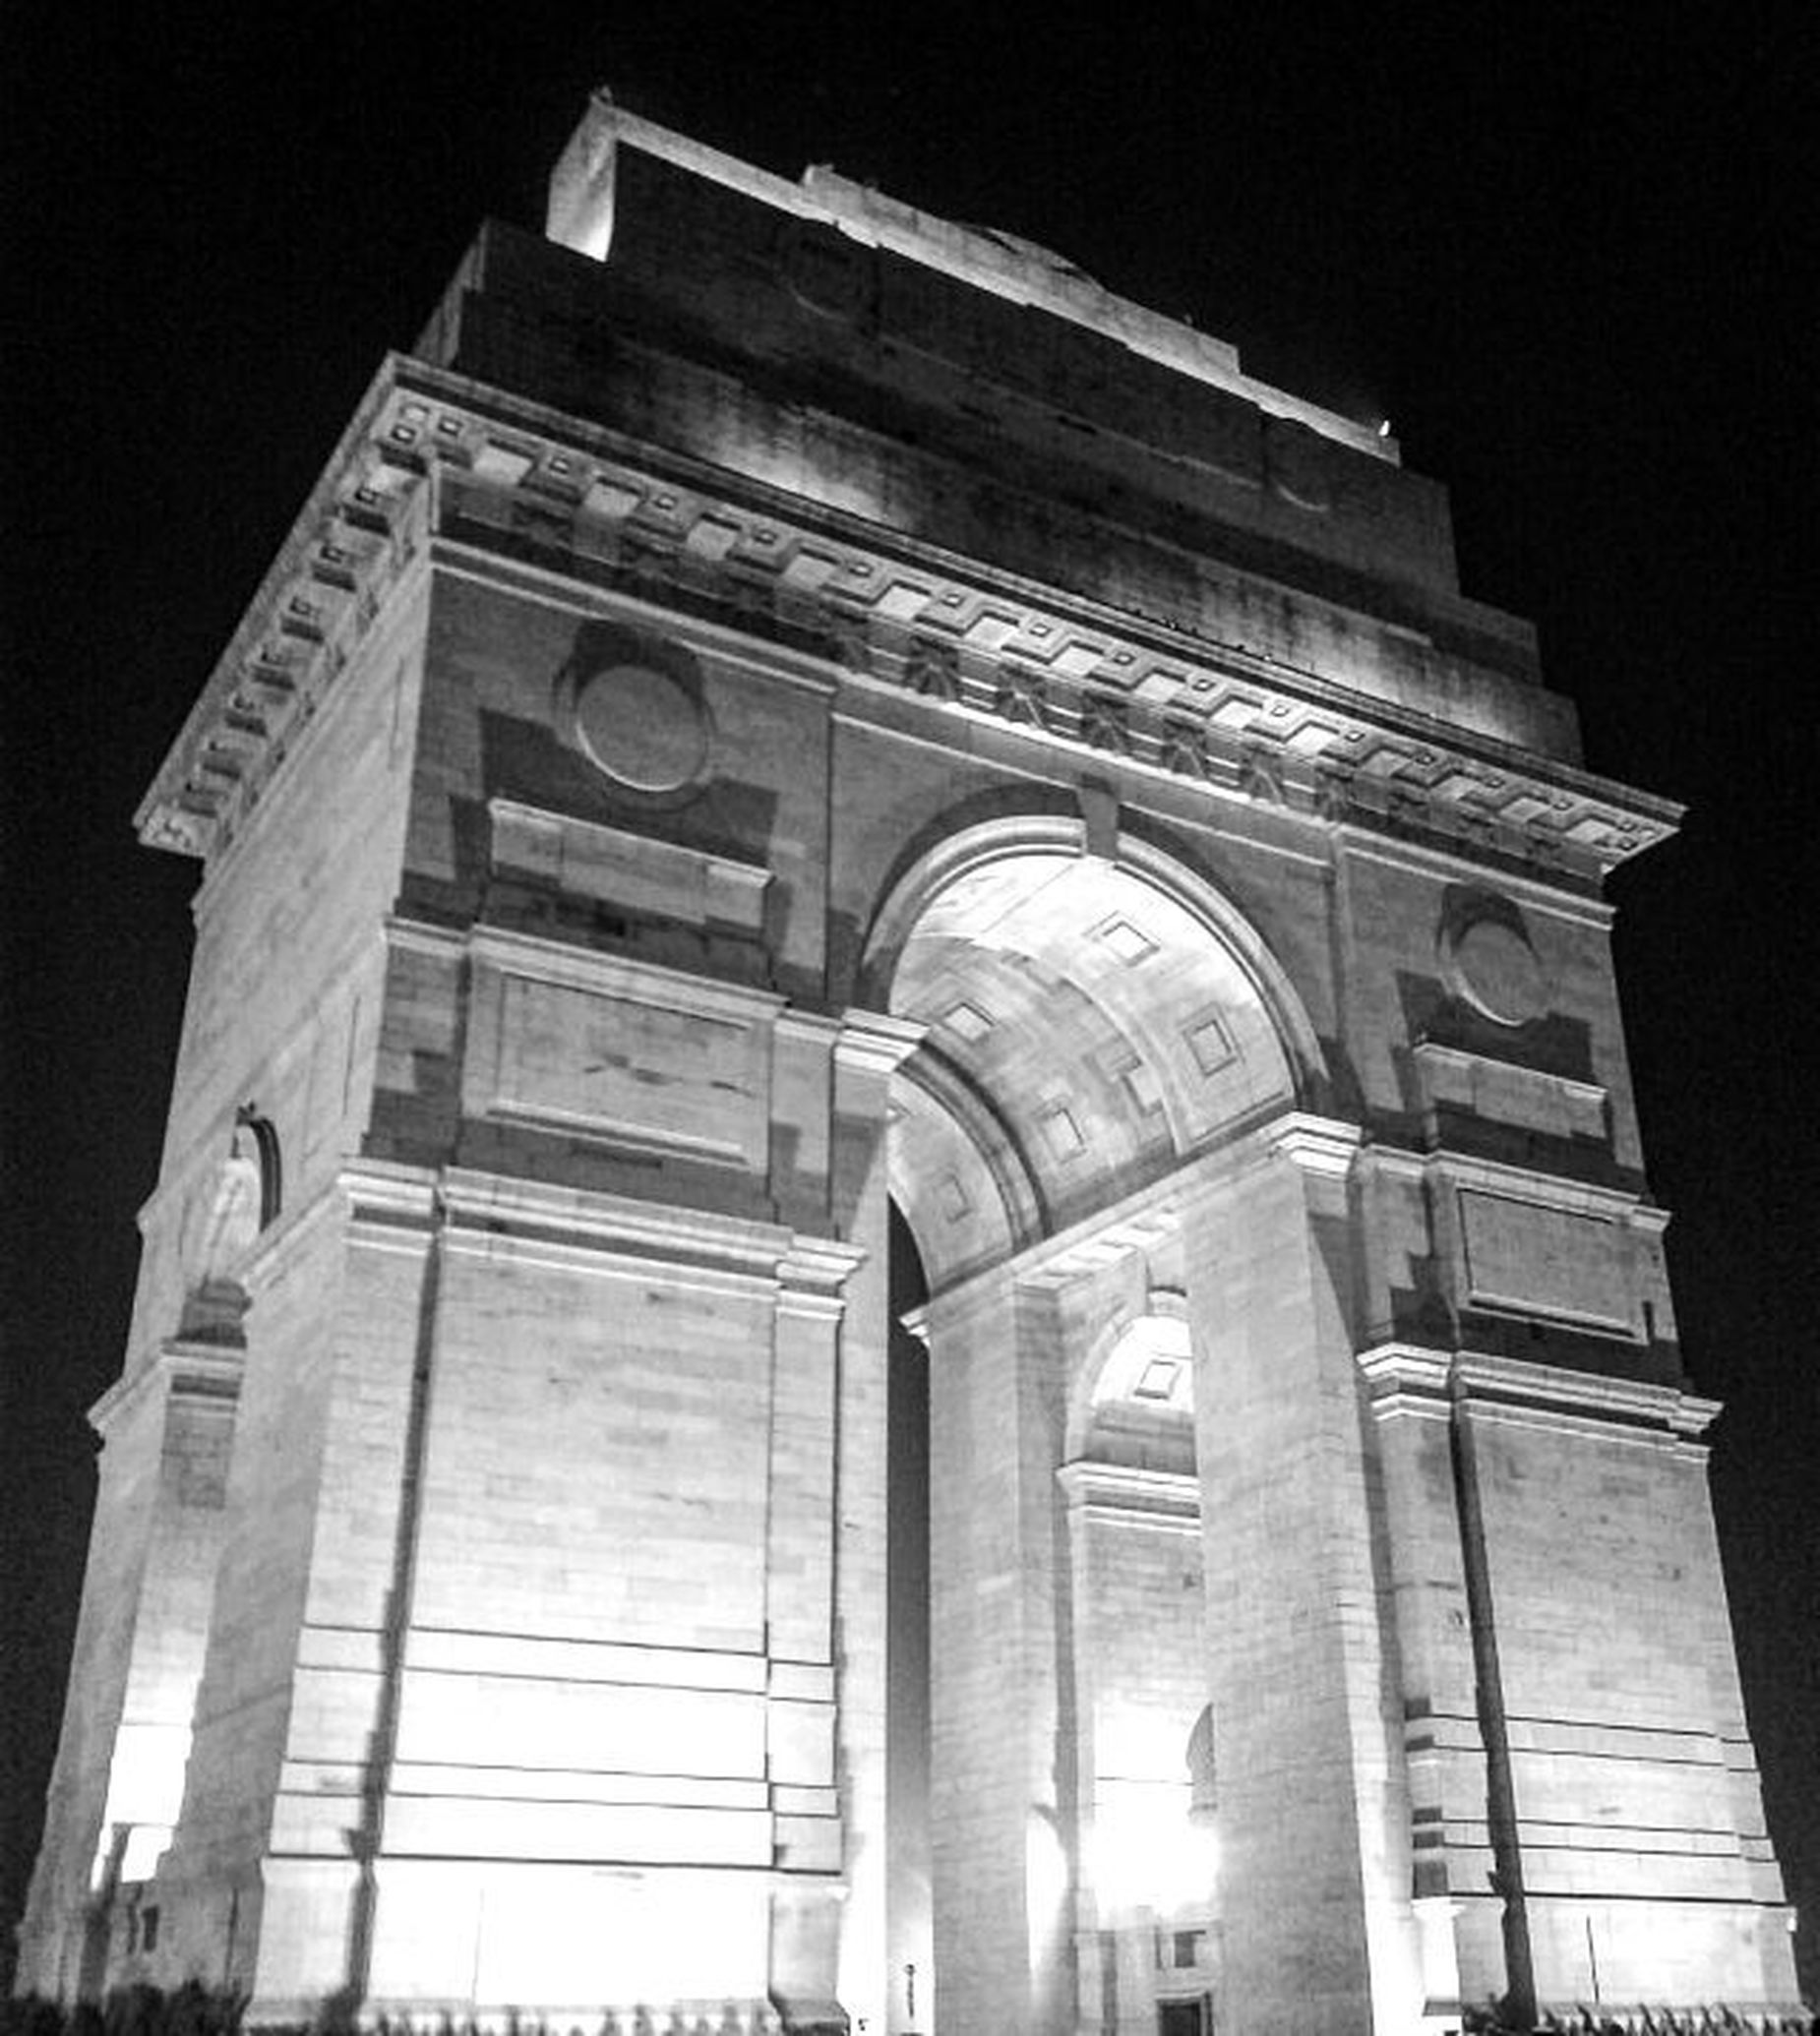 TheIndiaGate (All_India_war_Memorial)DesignedbySirEdwinLutyens Used for those who died in the period in the first world war. Framedindiagate Mytraveldiary Framedsymphonies Wanderlust Wanderer India Incredibleindia Proud Mobilephotography AnshumanShuklaPhotography